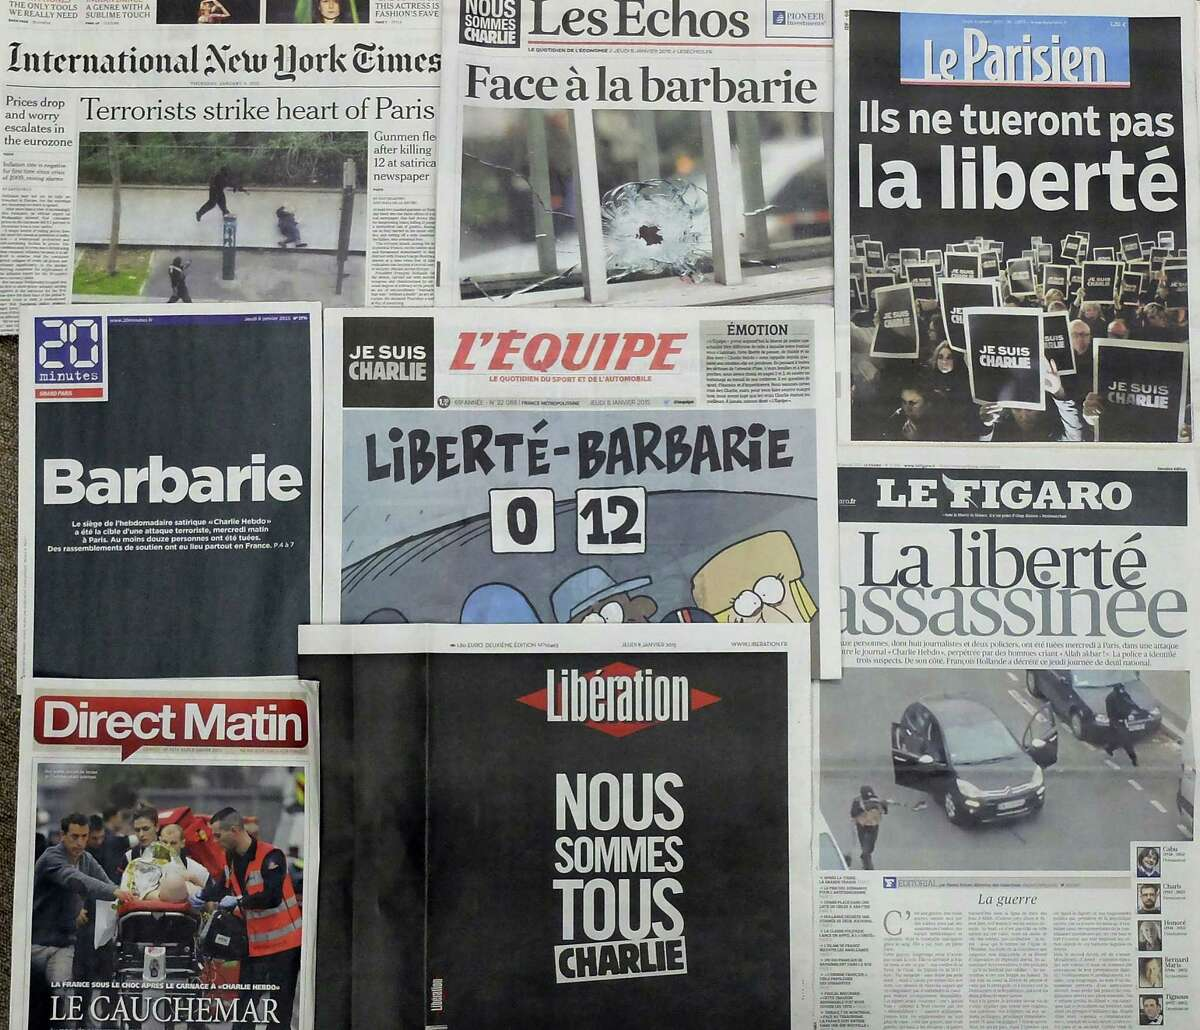 Frontpages of French newspapers reporting about Wednesday's attack on a satirical newspaper in Paris are displayed in Paris Thursday, Jan. 8, 2015. Police hunted Thursday for two heavily armed men, one with possible links to al-Qaida, in the methodical killing of 12 people at the Charlie Hebdo that caricatured the Prophet Muhammed. The prime minister said the possibility of a new attack